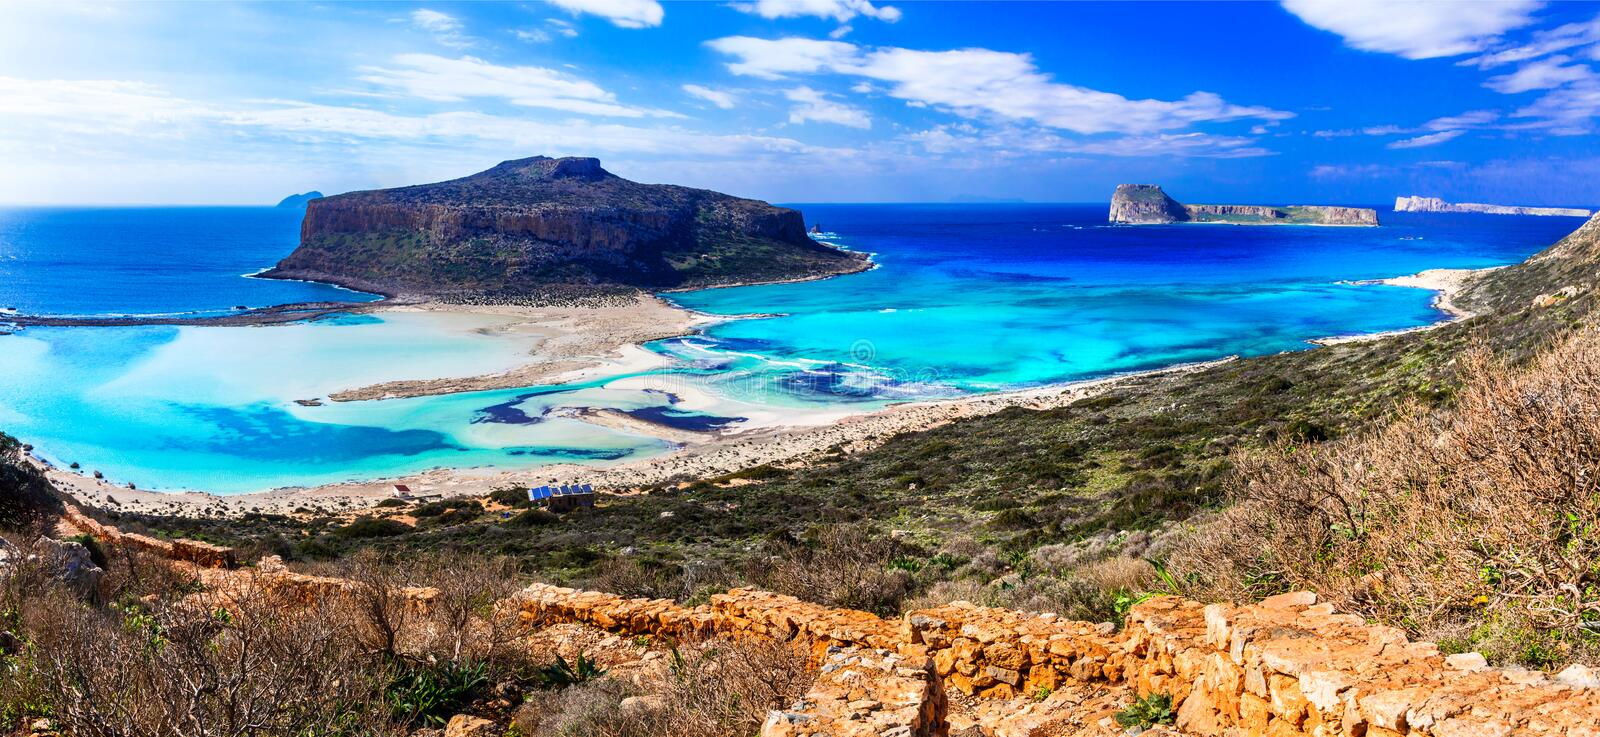 Greece - most beautiful beaches series - Balos bay in Crete island. Panoramic view of Balos bay,Crete island,Greece royalty free stock photos